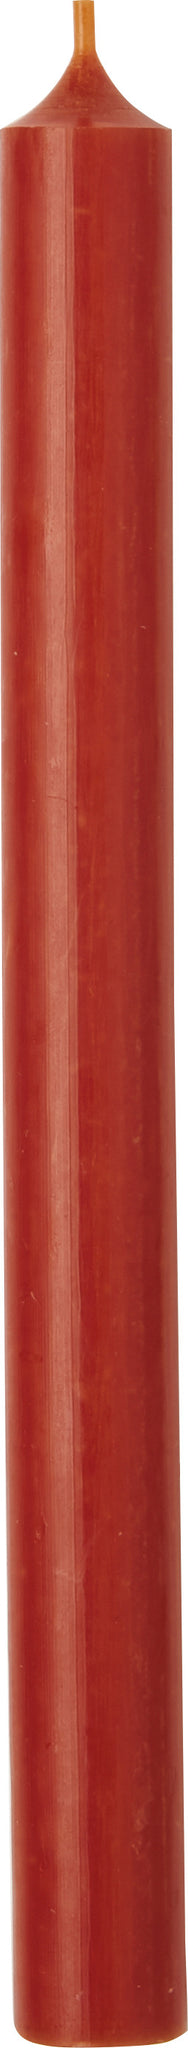 Dusty Orange Cylinder Candle - 25cm